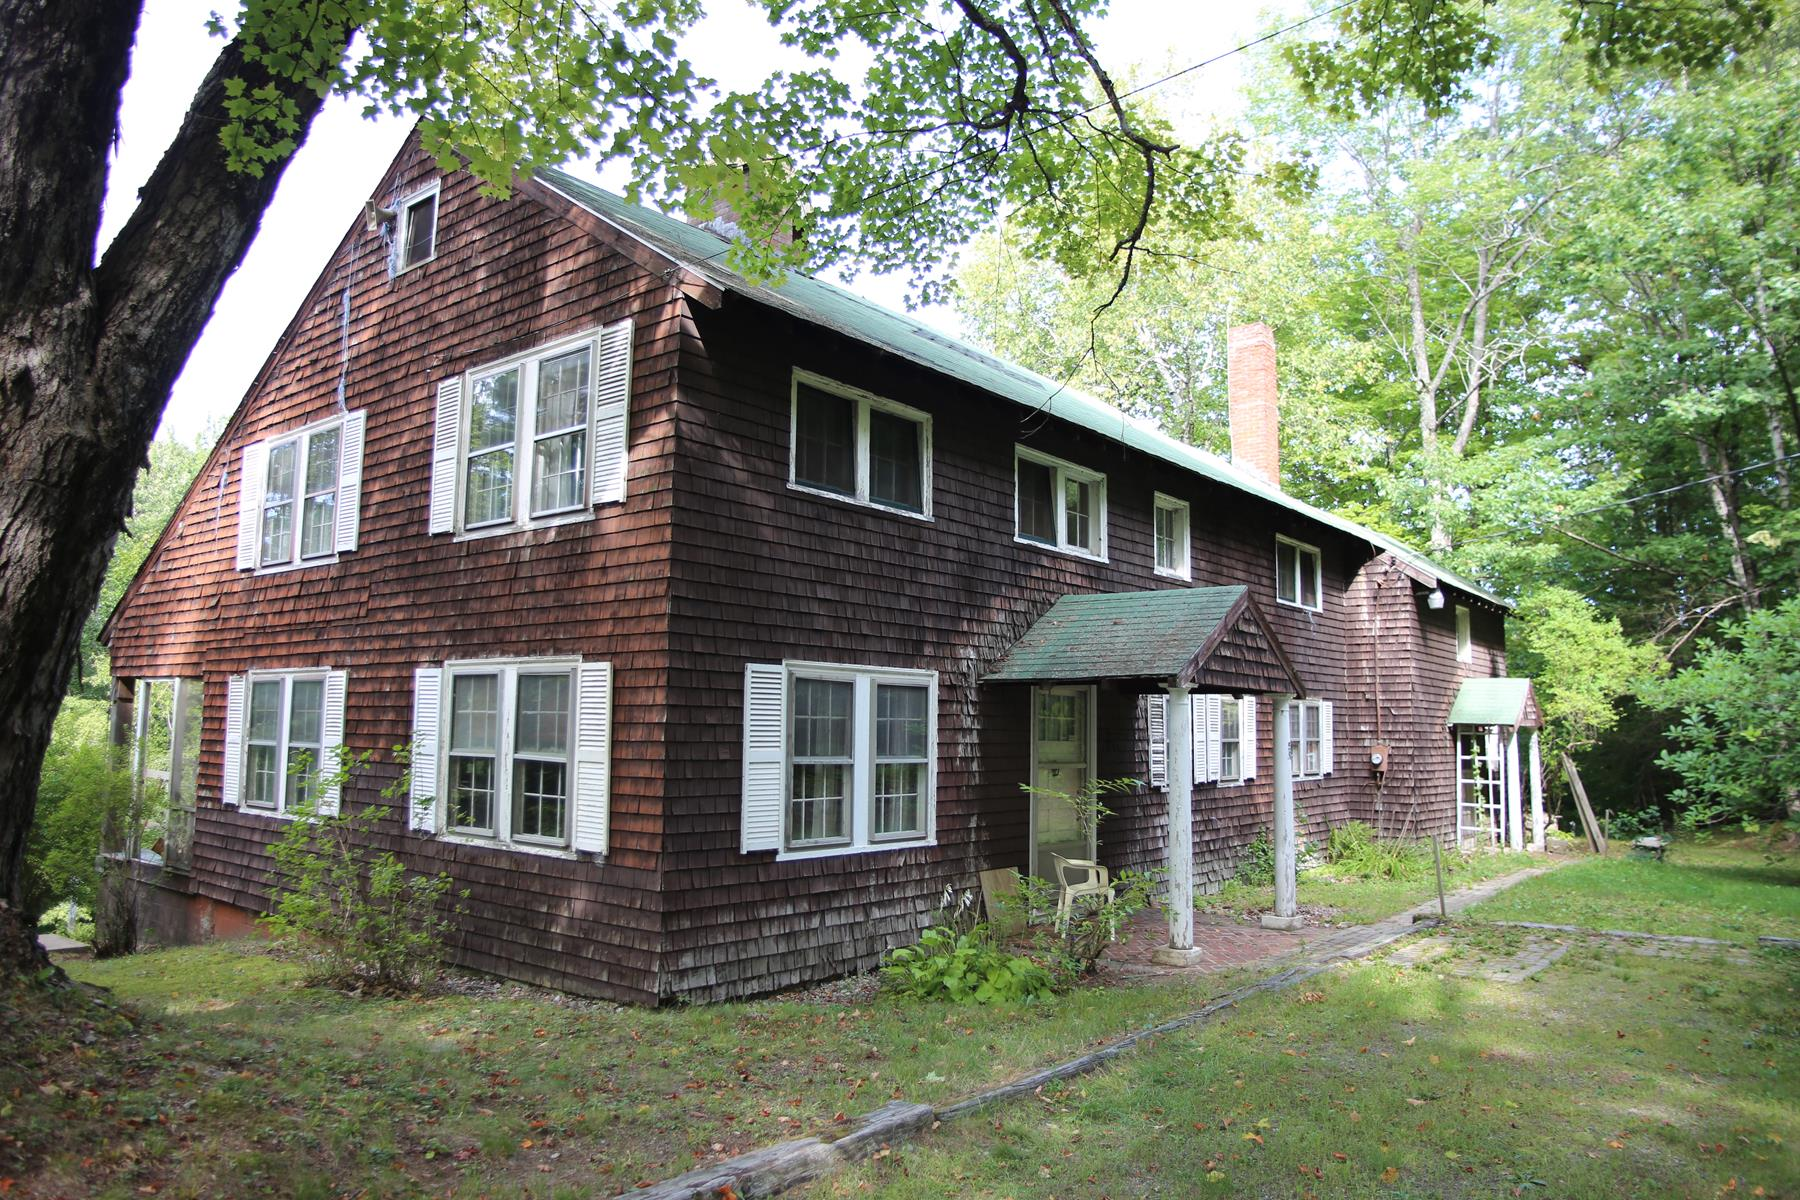 Single Family Home for Sale at Diamond in the Rough 59 Lynch Rd Hill, New Hampshire 03243 United States